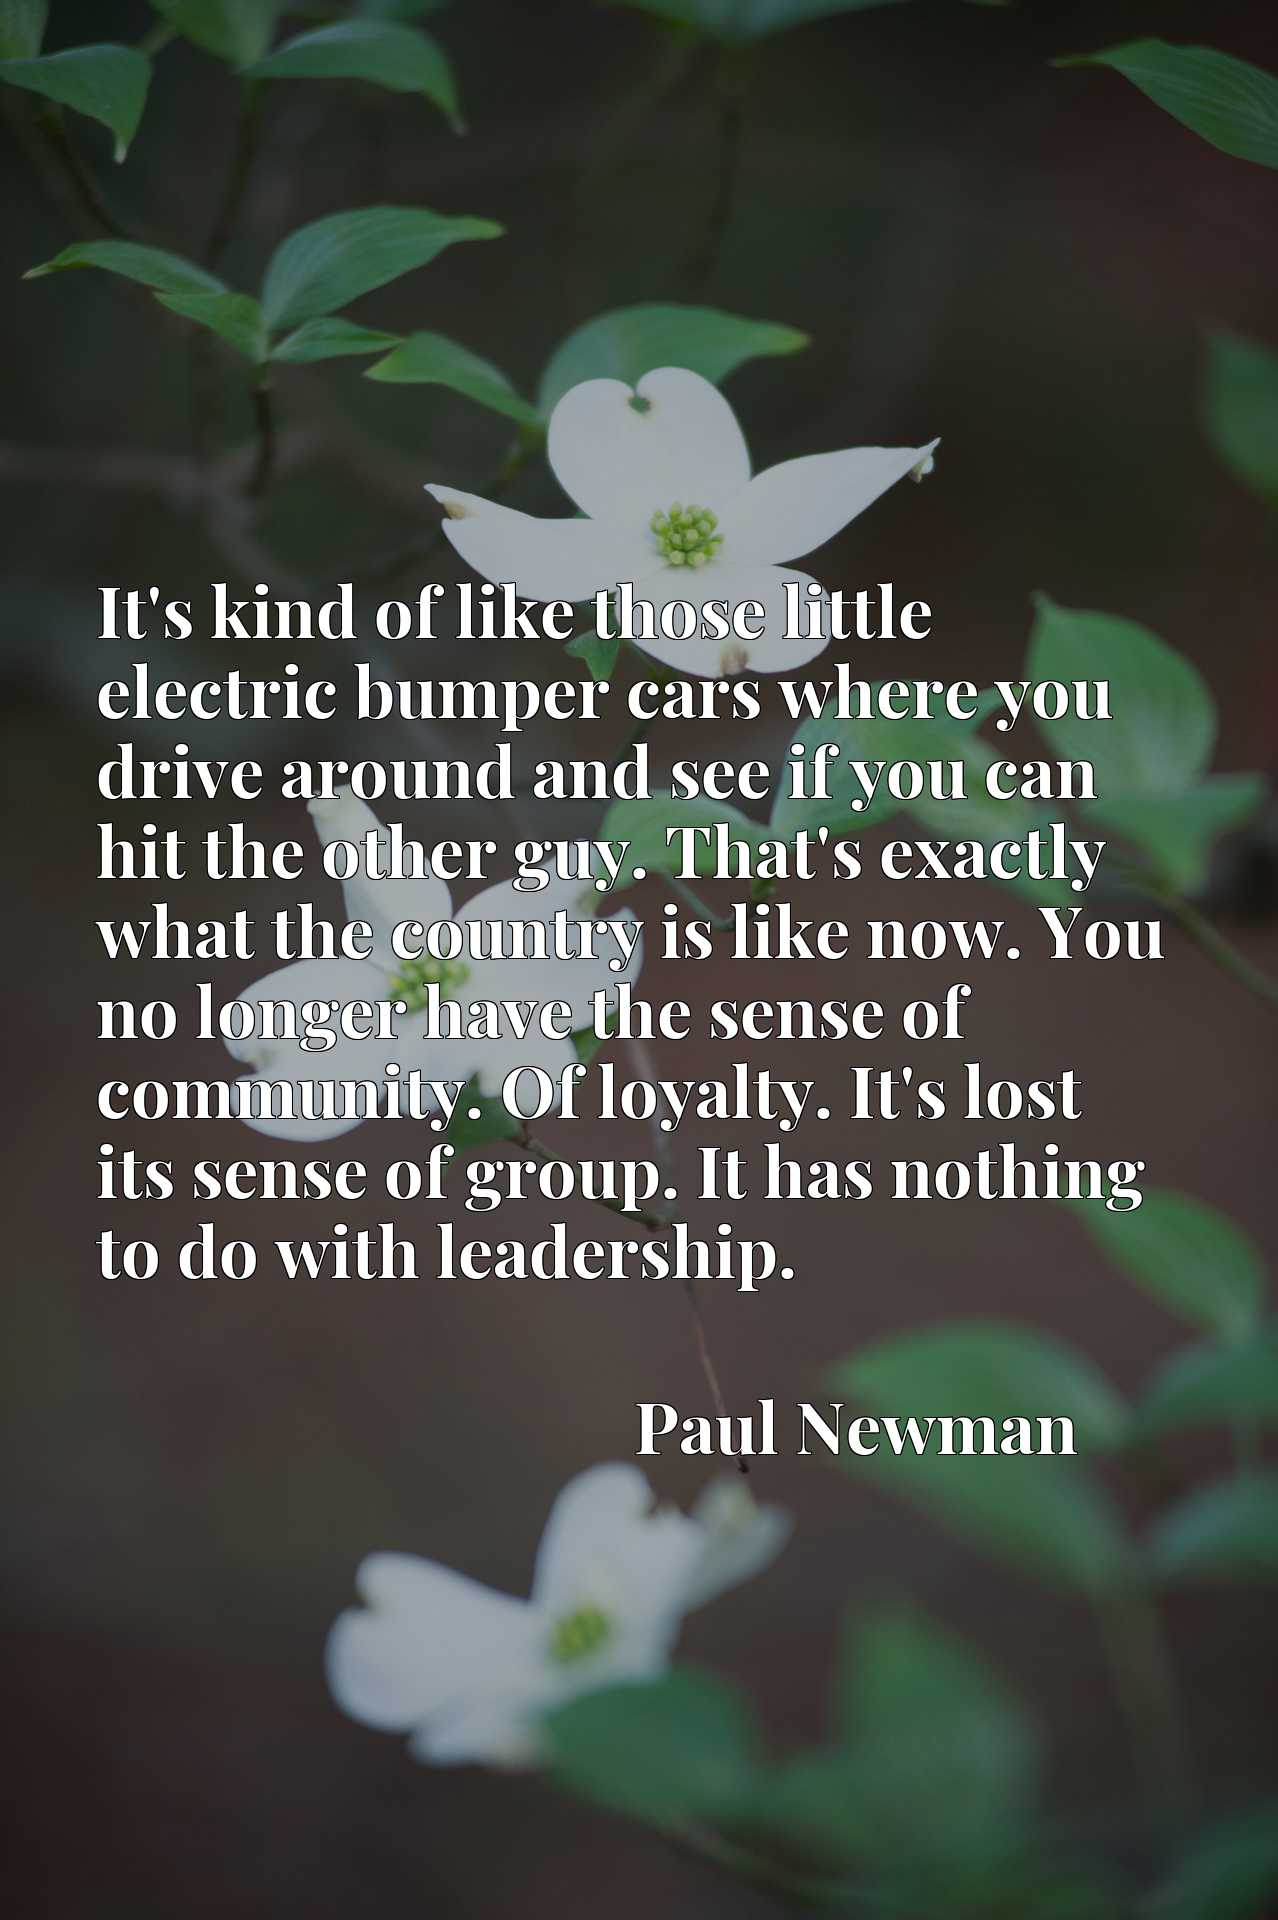 Quote Picture :It's kind of like those little electric bumper cars where you drive around and see if you can hit the other guy. That's exactly what the country is like now. You no longer have the sense of community. Of loyalty. It's lost its sense of group. It has nothing to do with leadership.